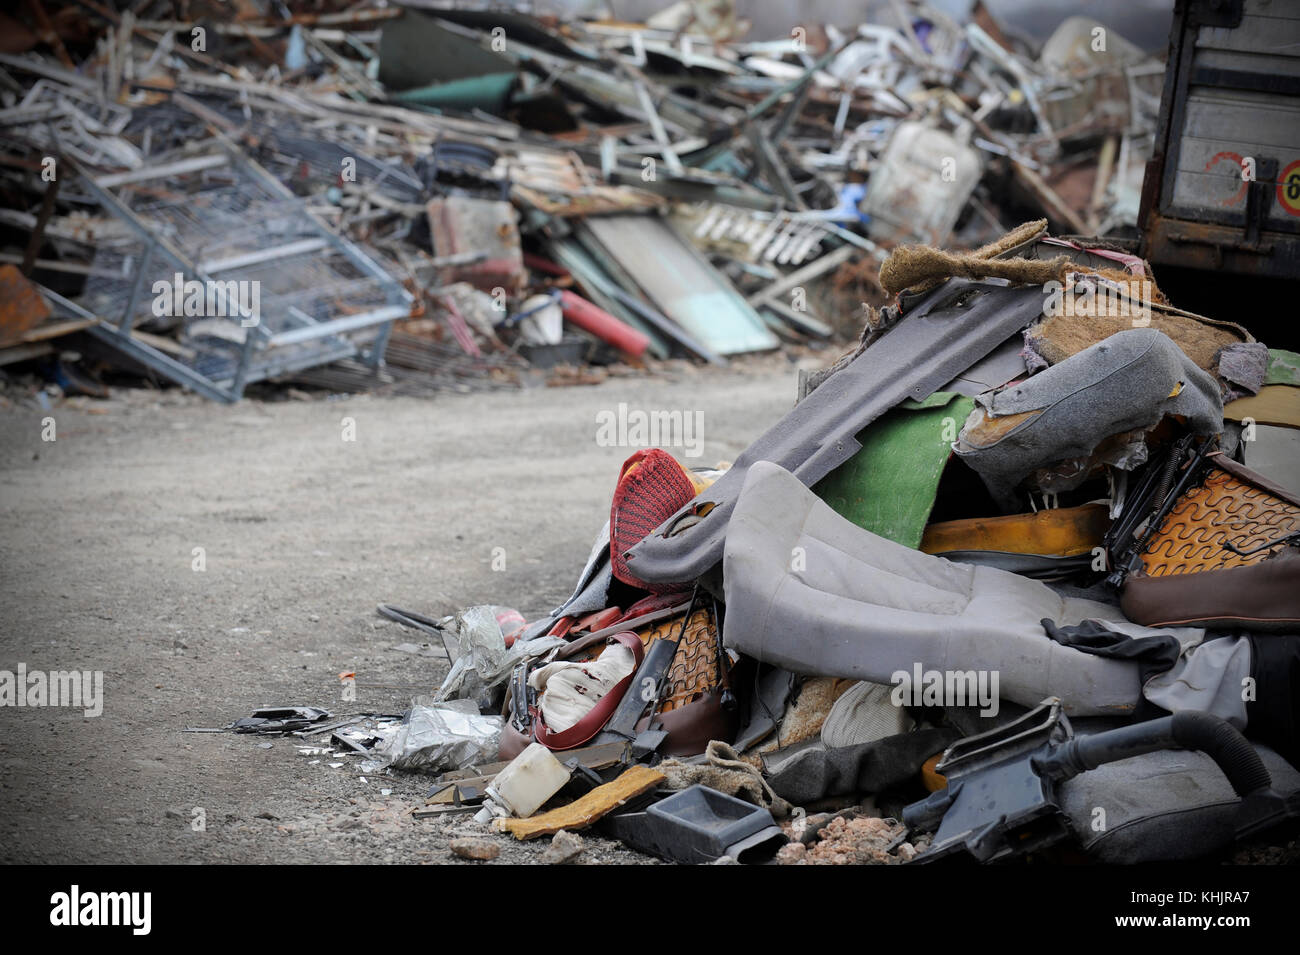 Recyclinghof Hamburg Bergedorf Car Parts Garbage Stock Photos And Car Parts Garbage Stock